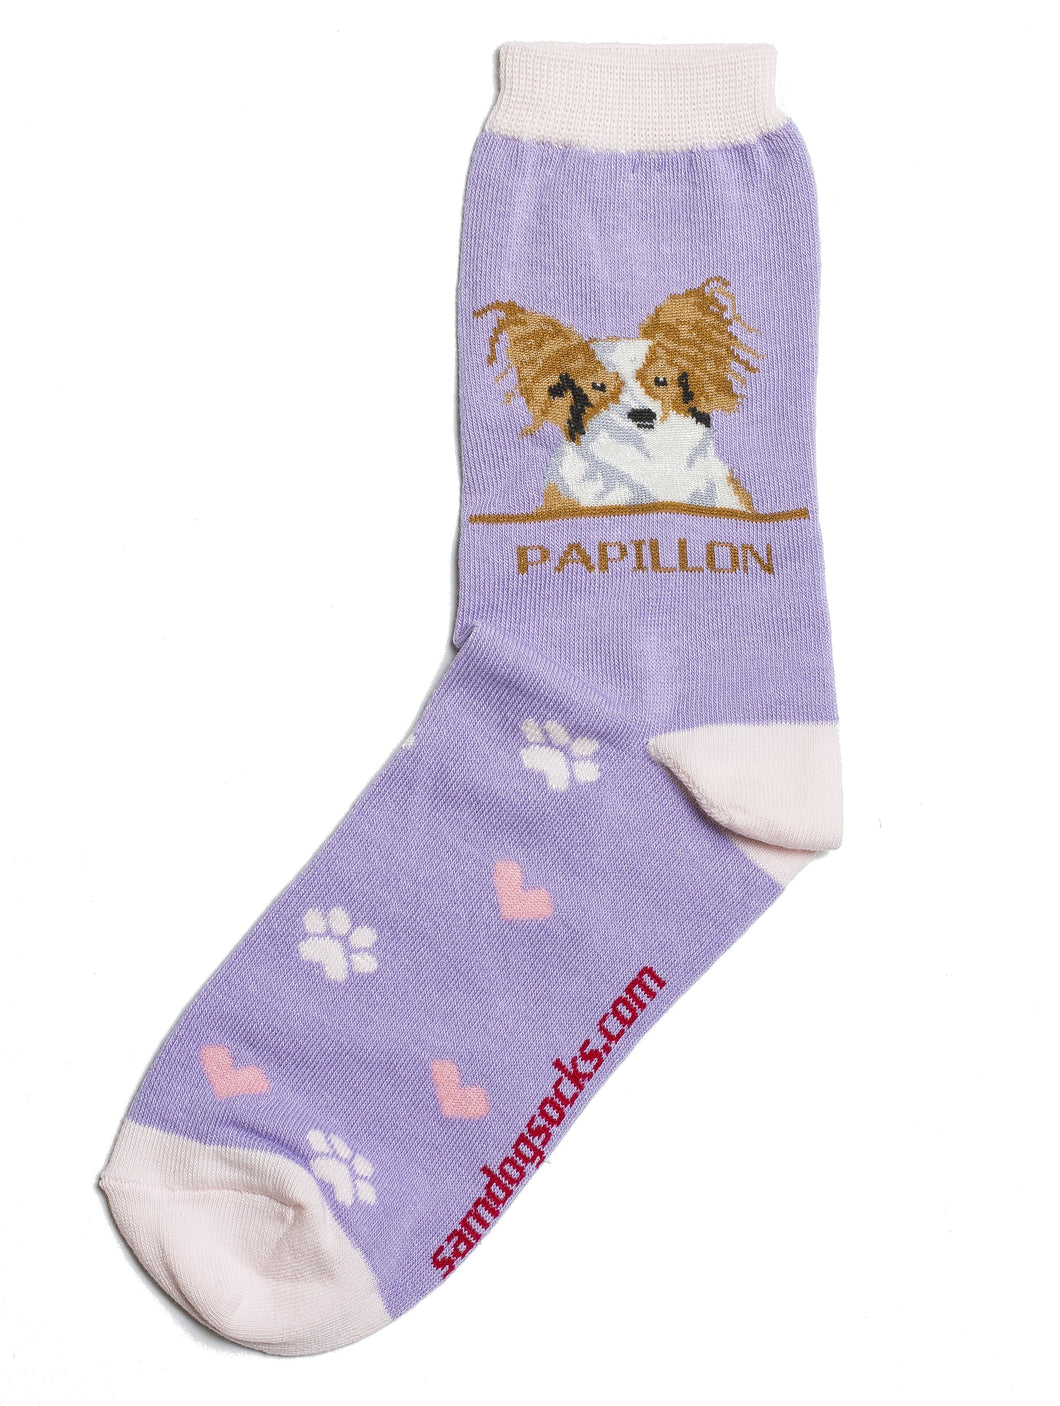 Papillon Brown Dog Socks - samnoveltysocks.com